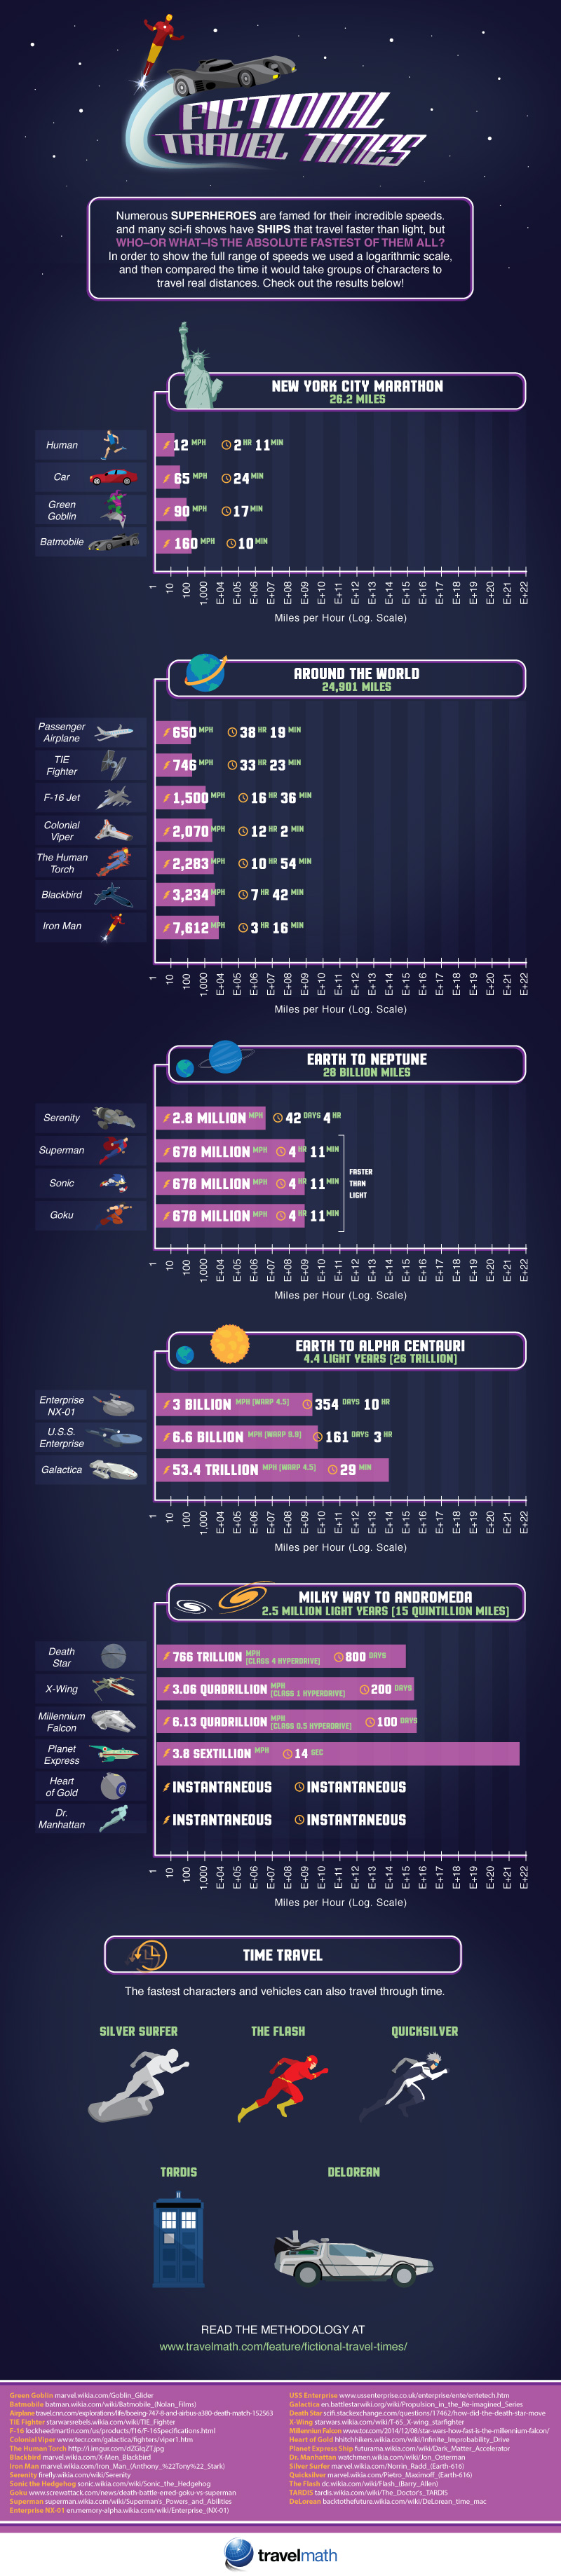 Fictional Travel Times Compared infographic